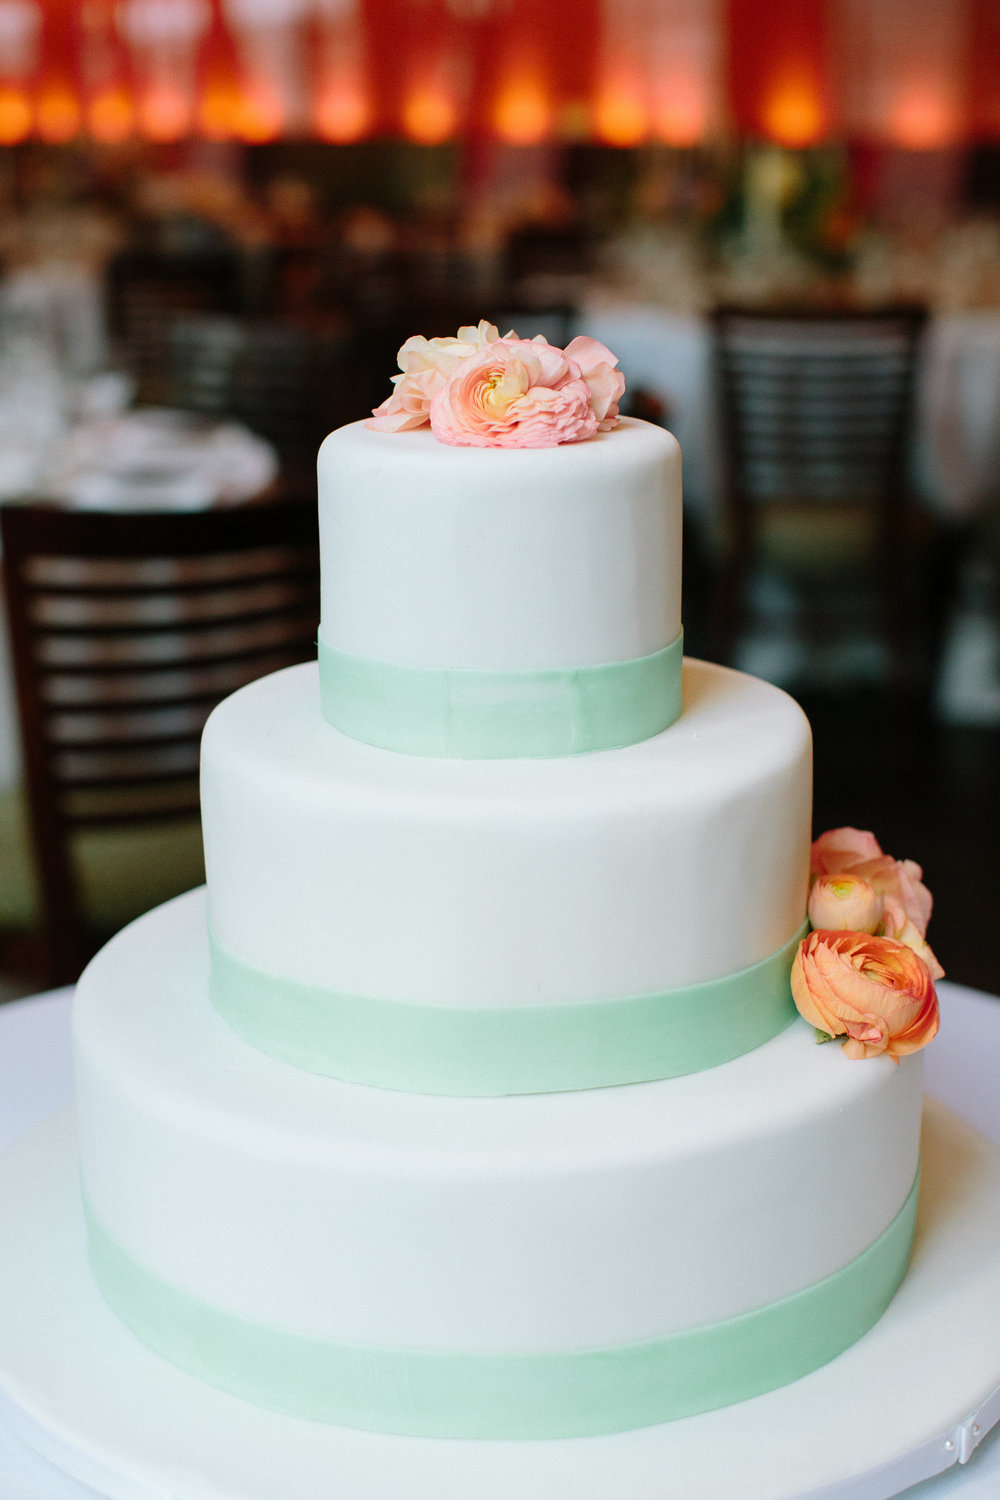 Wedding cake with ranunculus